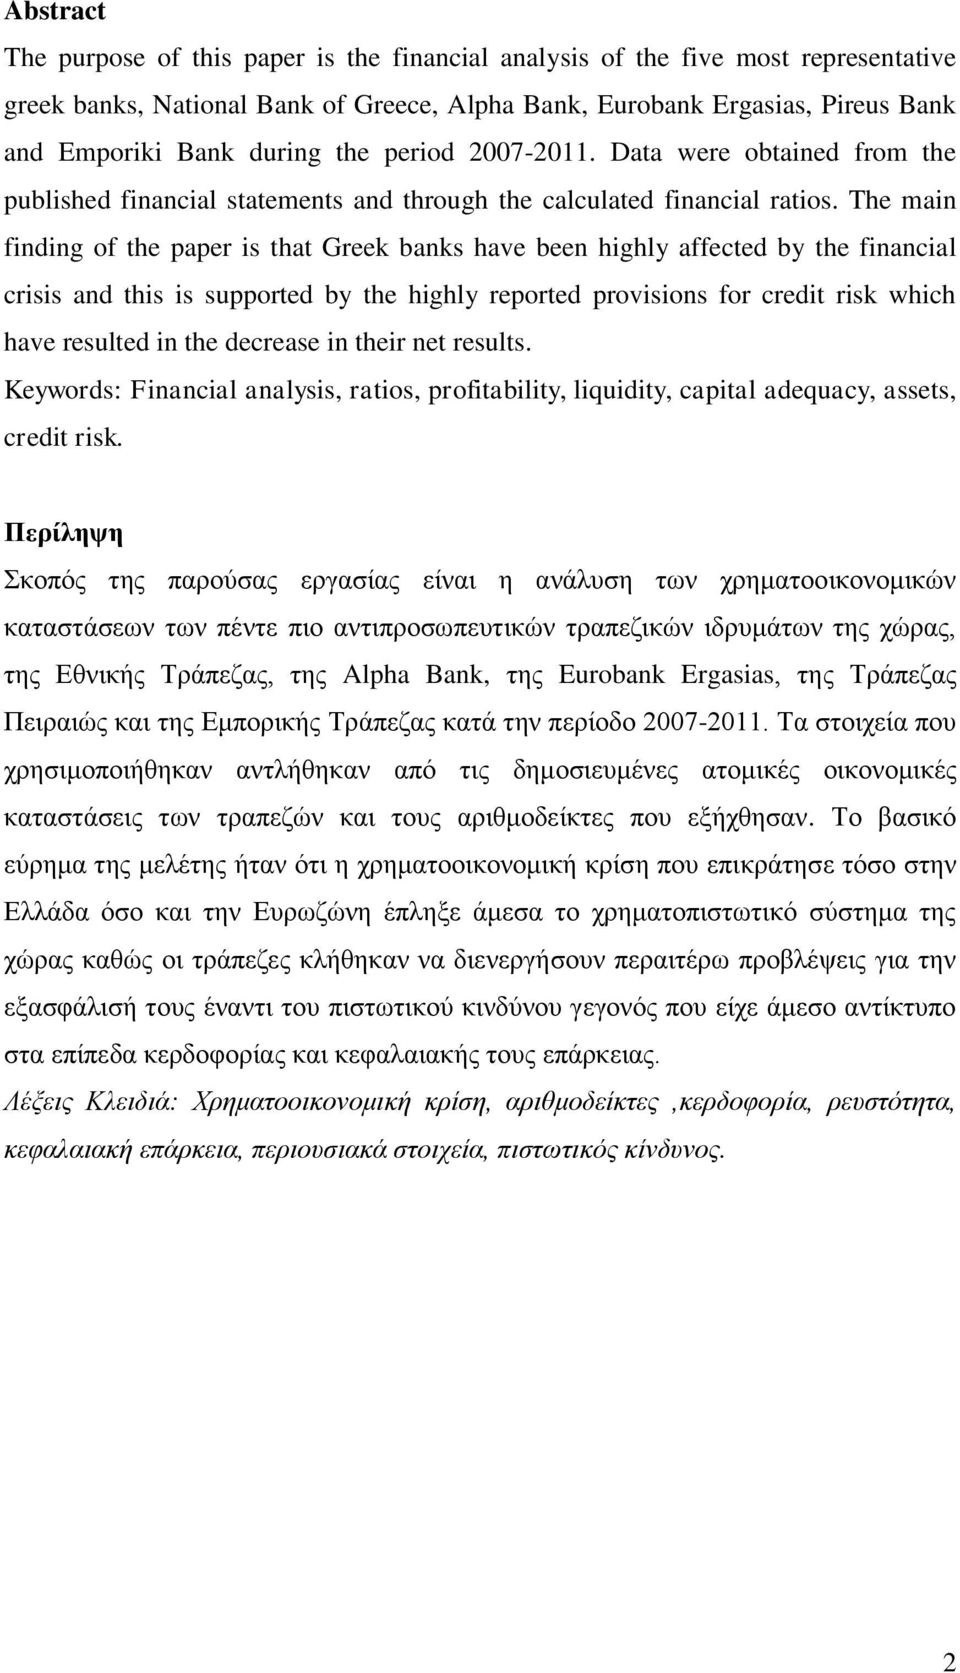 The main finding of the paper is that Greek banks have been highly affected by the financial crisis and this is supported by the highly reported provisions for credit risk which have resulted in the